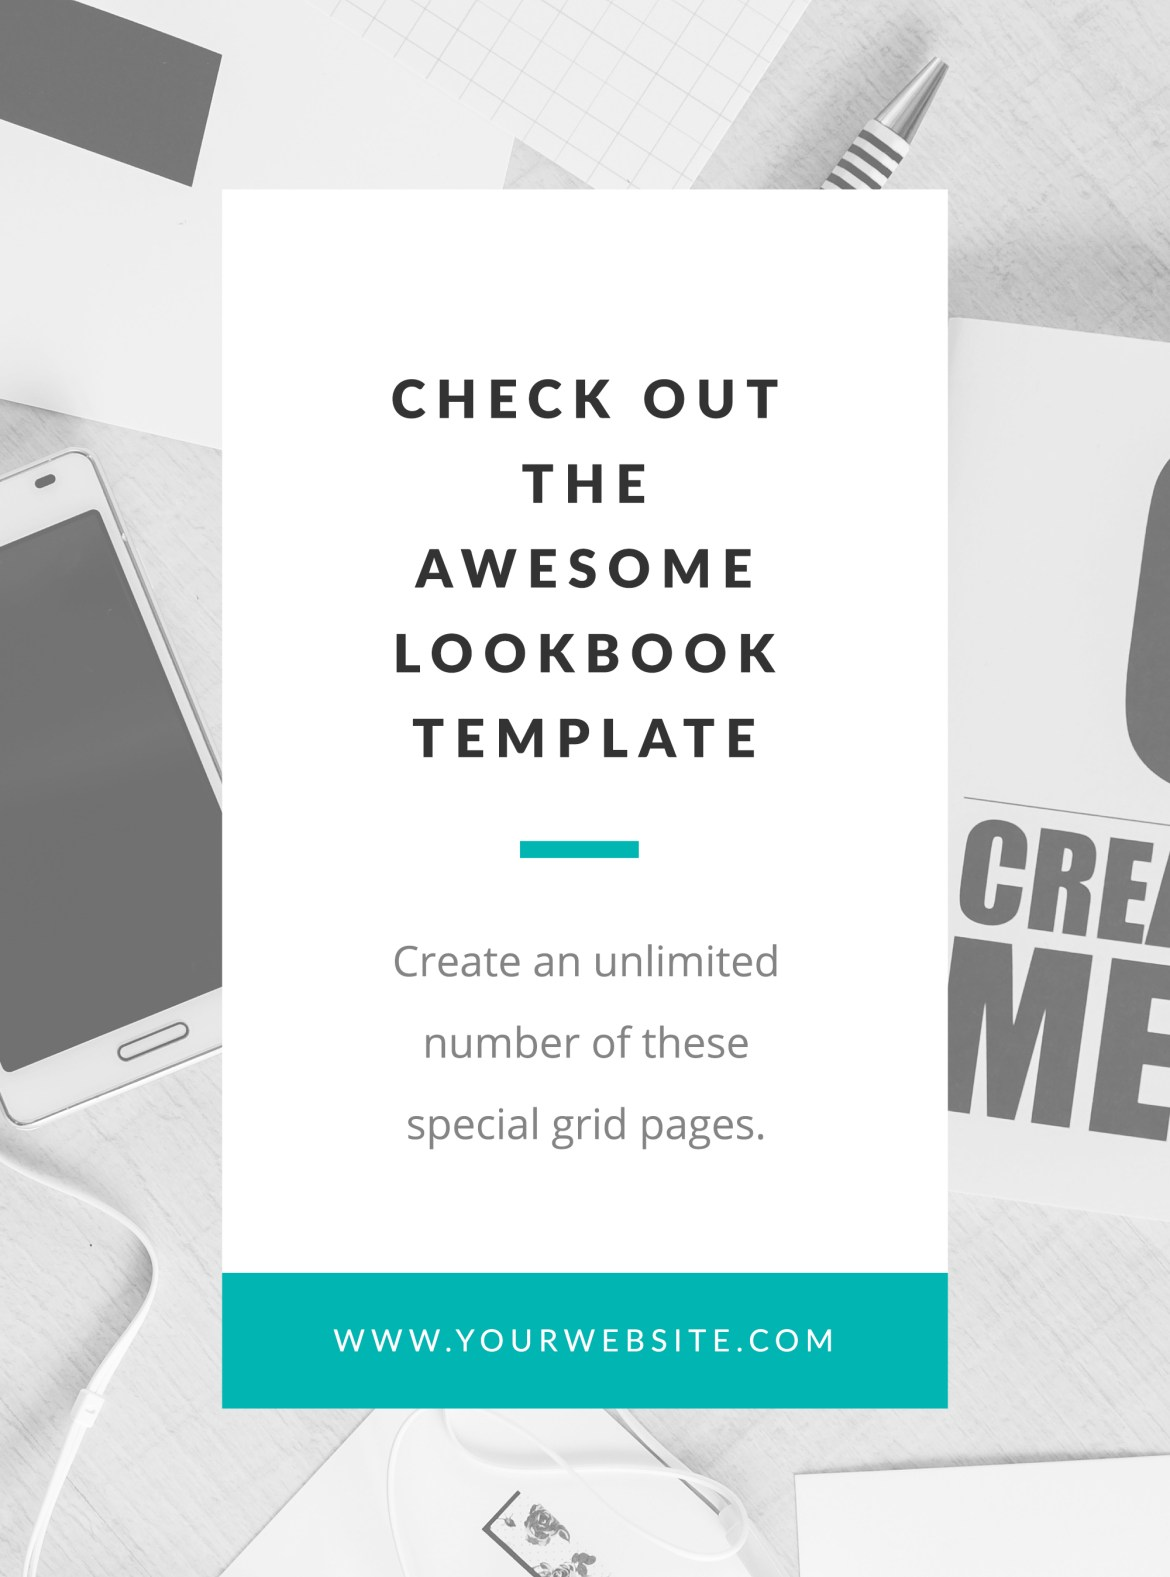 Awesome Lookbook Template